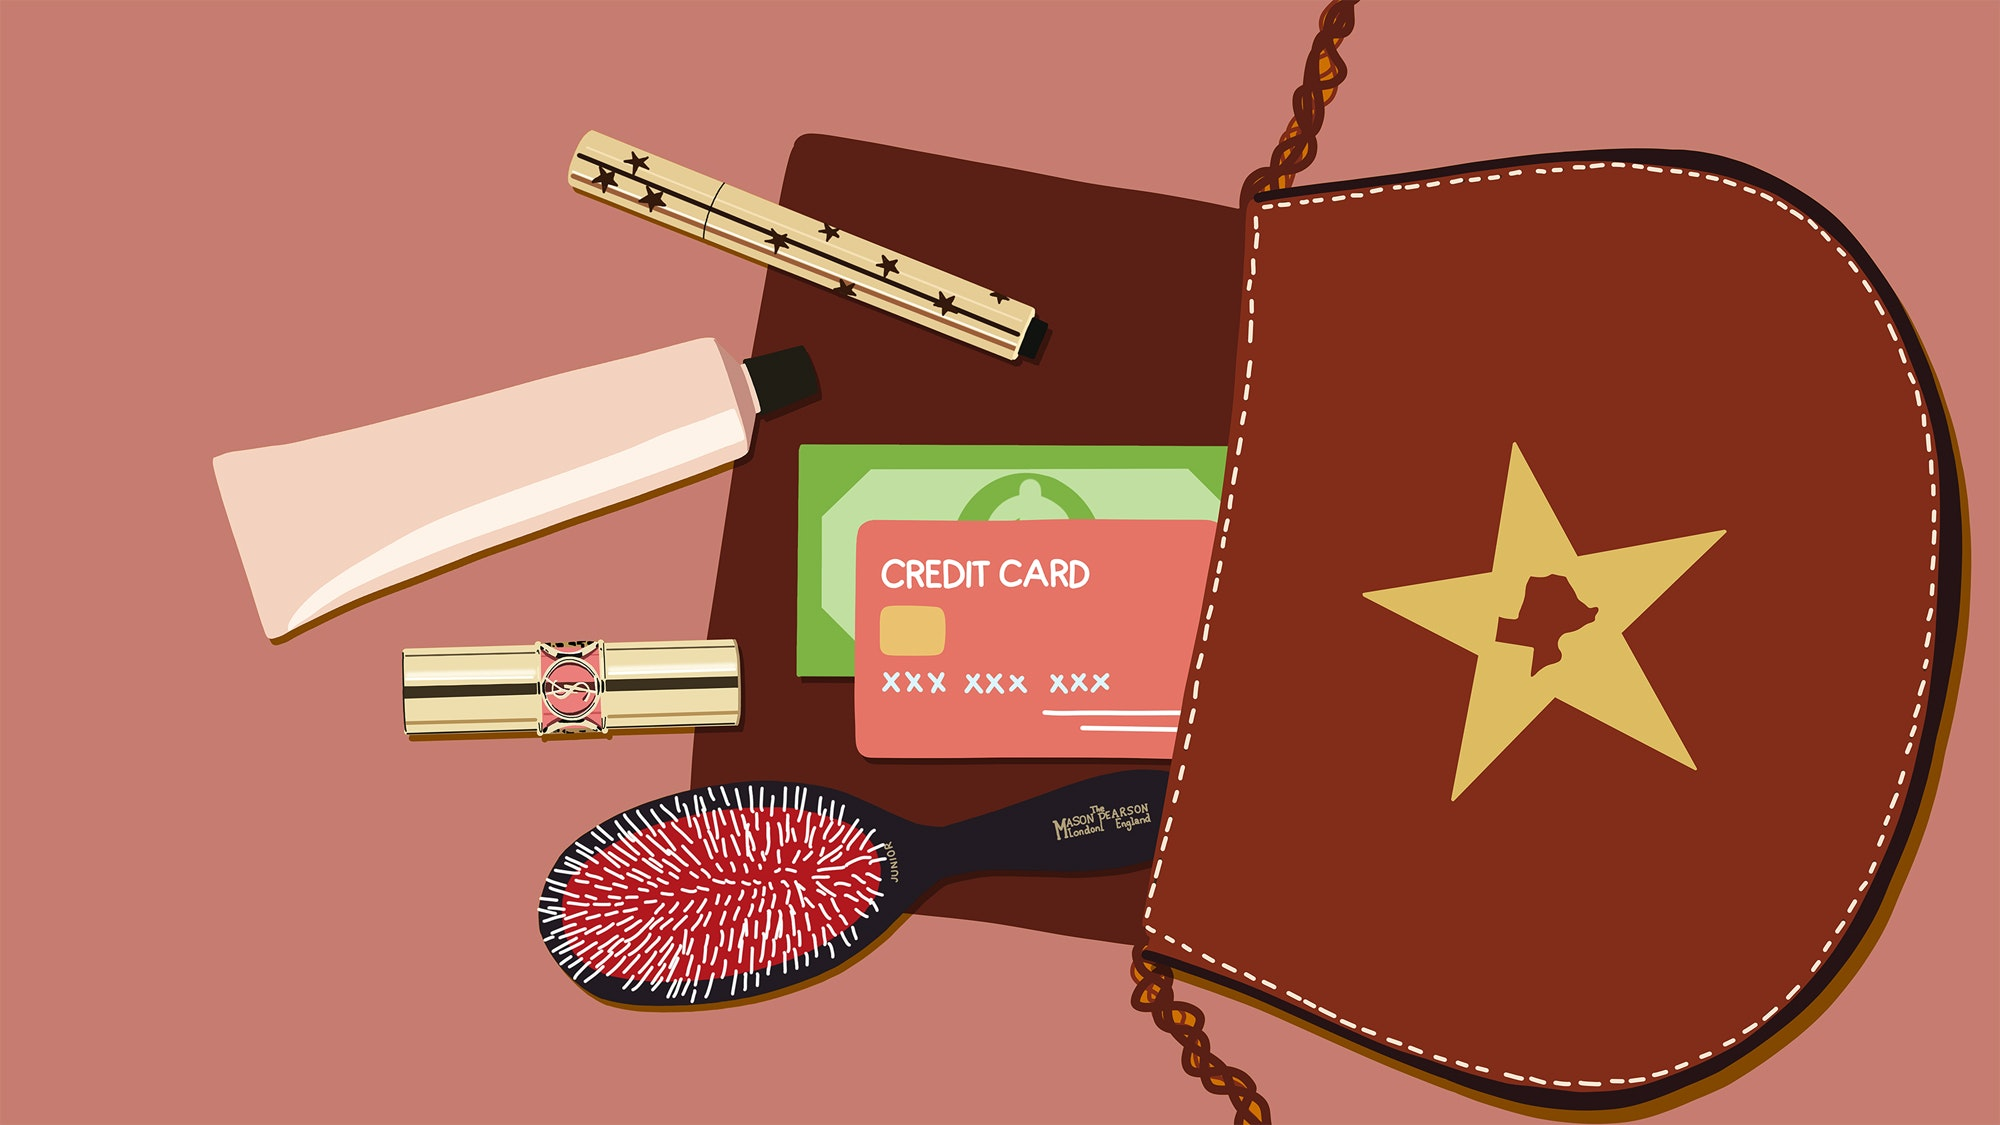 illustration of purse contents and credit cards falling out of purse